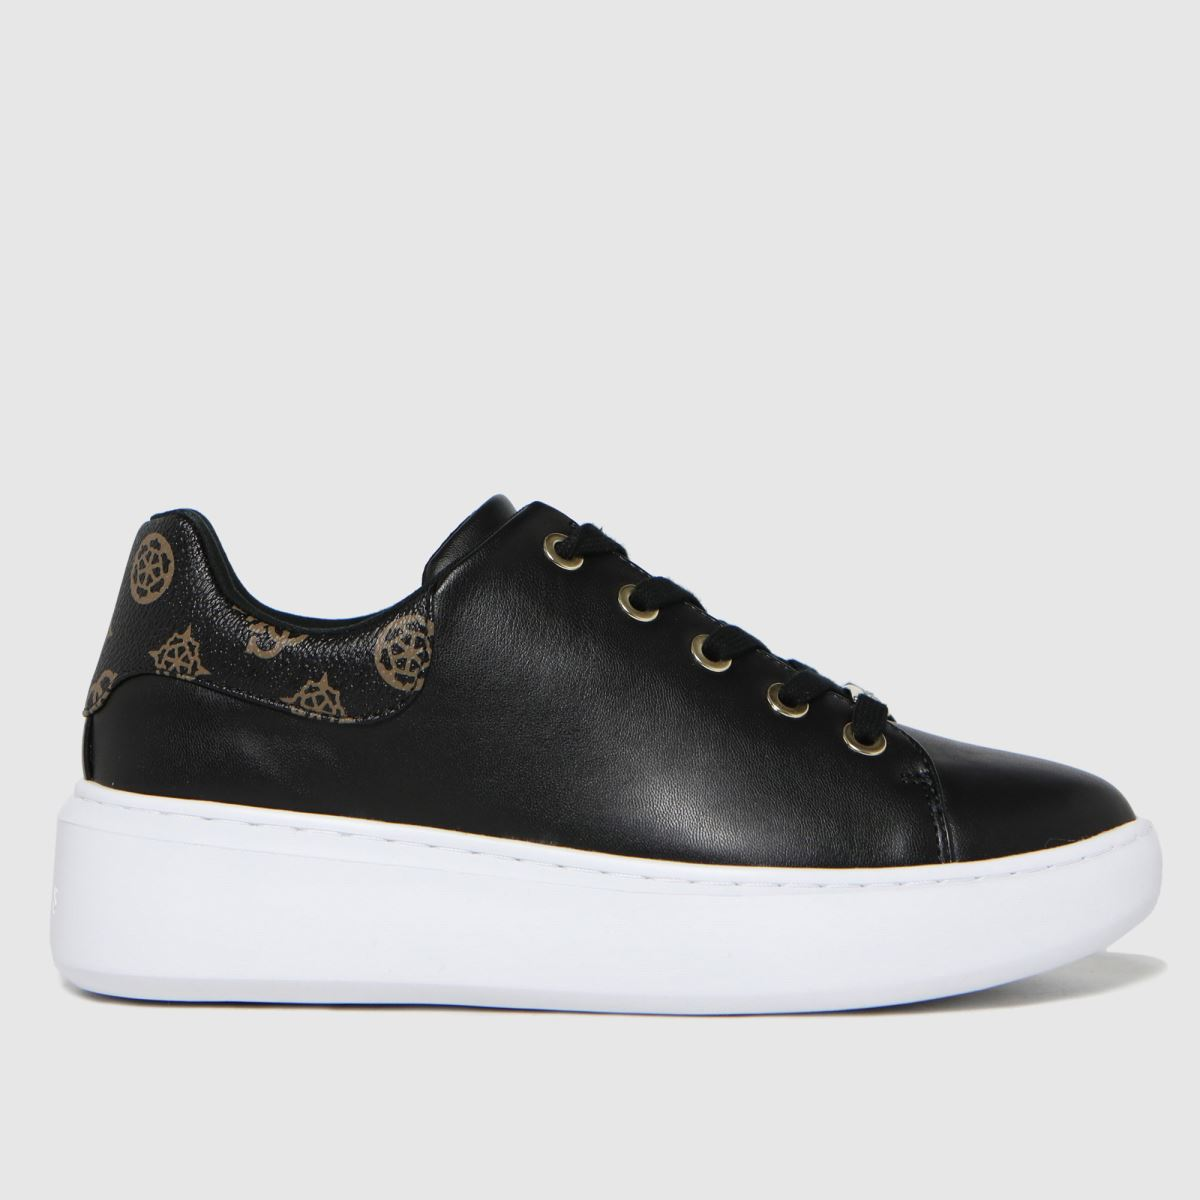 GUESS Black & Gold Bradly2 Trainers